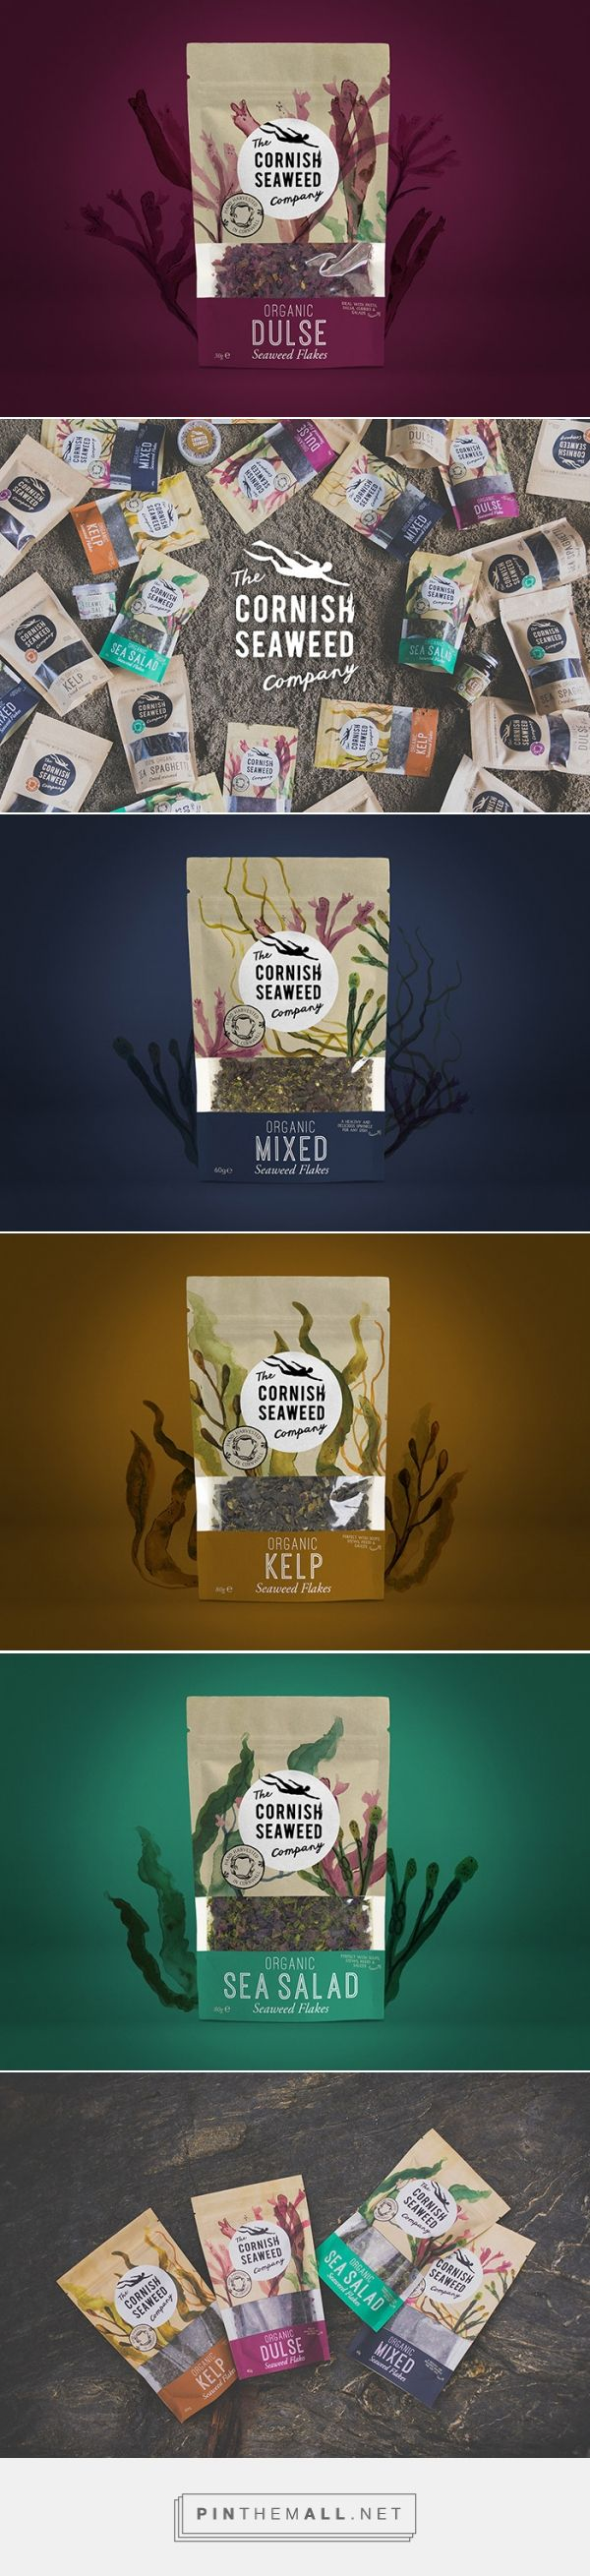 The Cornish Seaweed Company by Kingdom & Sparrow. Source: Daily Package Design Inspiration. Pin curated by #SFields99 #packaging #design #inspiration #ideas #creative #product #consumer #snack #doypack #seaweed #organic #food